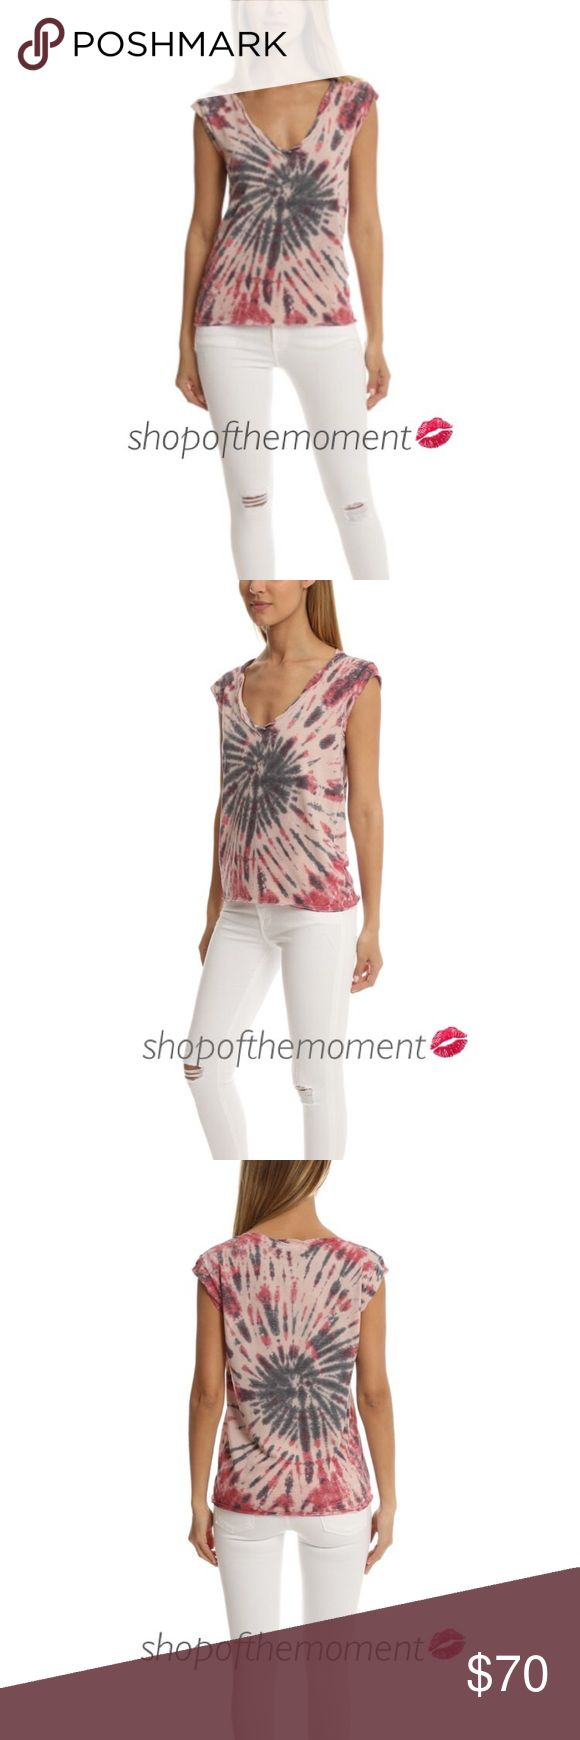 """🍭🆕Pam & Gela Tie Dye V Neck Tee in Grateful Dye Pam & Gela Tie Dye V Neck Tee in Grateful Dye  🍭🍭🍭🍭🍭🍭🍭🍭🍭🍭🍭🍭  Sun faded tie dye adds beach ready style to a lightweight muscle tee with a deep crinkled V-neckline.  Fabrication: Cotton jersey 50% polyester/37% cotton/13% rayon Made in the glamorous USA, baby! 🇺🇸  Approximate Measurements: Length: 24""""  🍭🍭🍭🍭🍭🍭🍭🍭🍭🍭🍭🍭  ✗ Drama ✗ Trades ⚡️Fast Shipper ☆☆☆☆☆ 5 star seller  💋 Smooches, D Pam & Gela Tops Muscle Tees"""